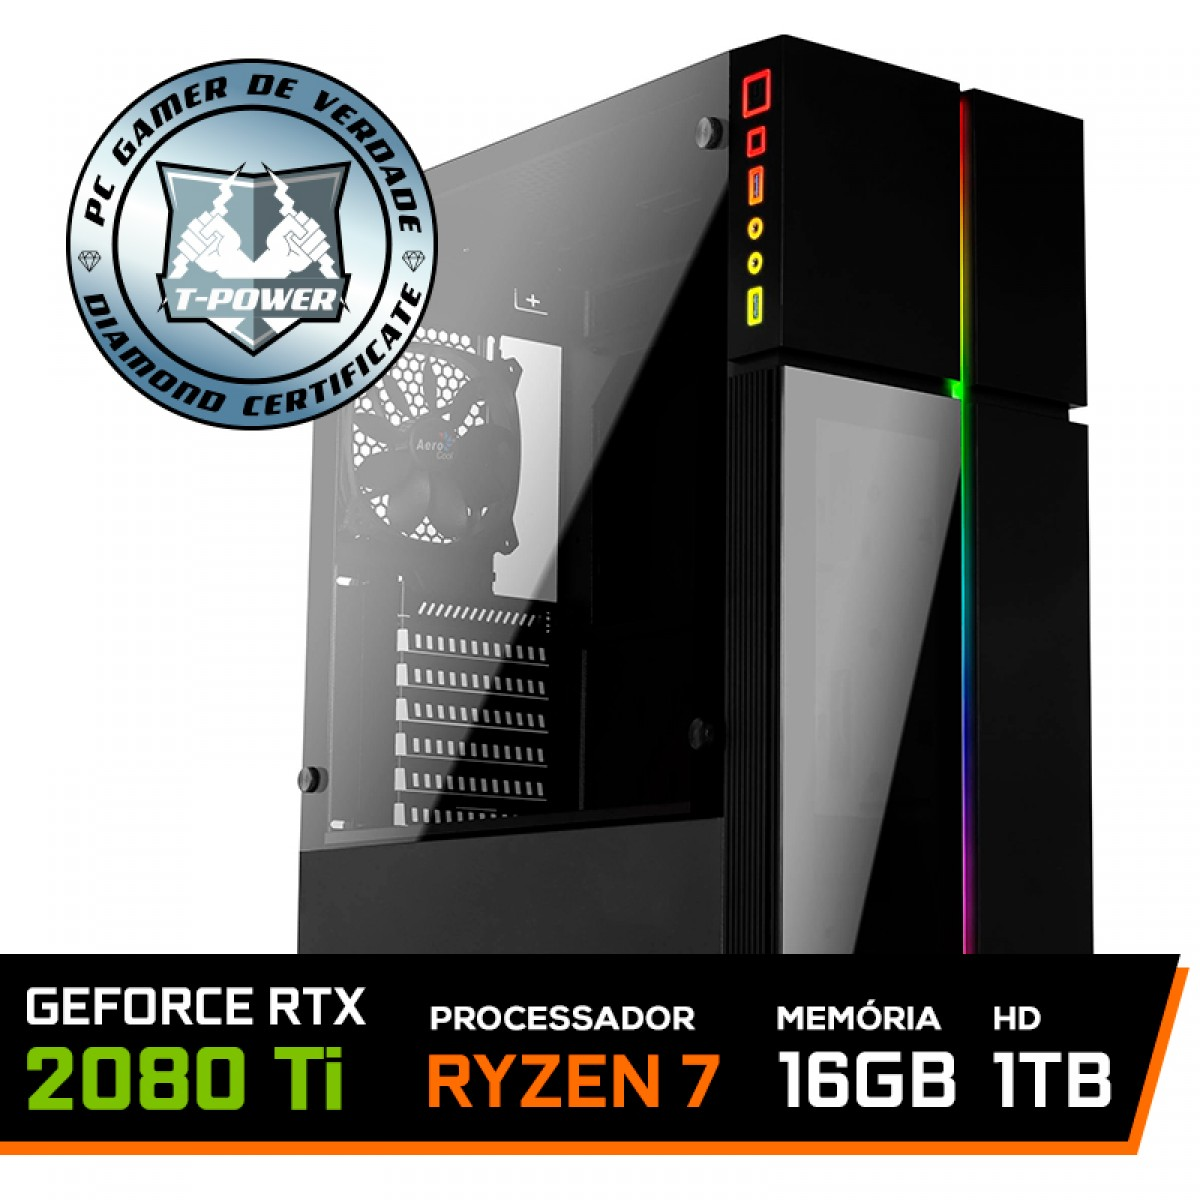 Pc Gamer T-Power Destroyer Lvl-6 AMD Ryzen 7 3800X / GeForce RTX 2080 Ti / DDR4 16GB / HD 1TB / 600W